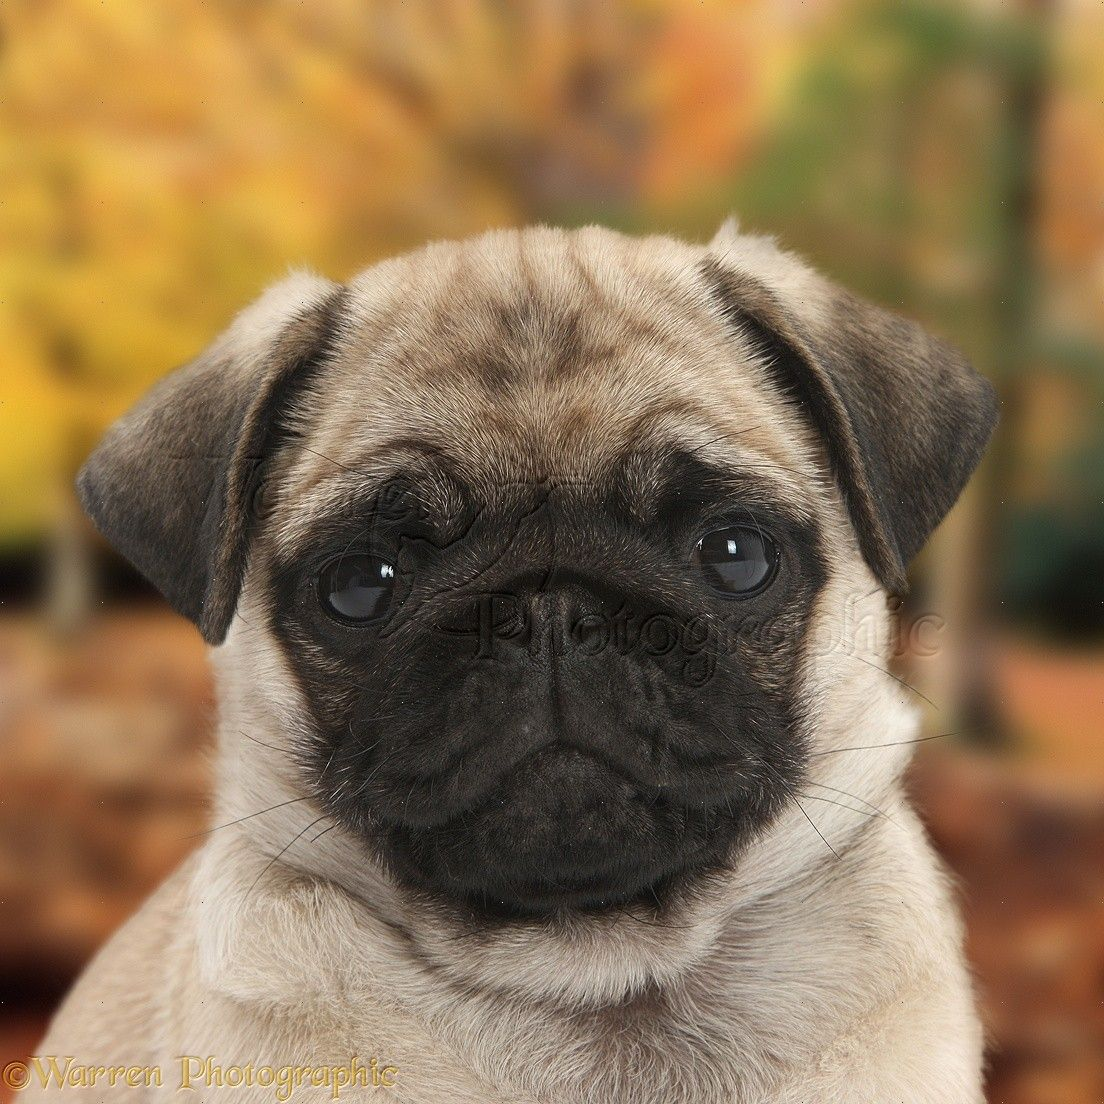 8 Week Old Pug Puppy Pictures Pugs Cute Pug Puppies Cute Pugs